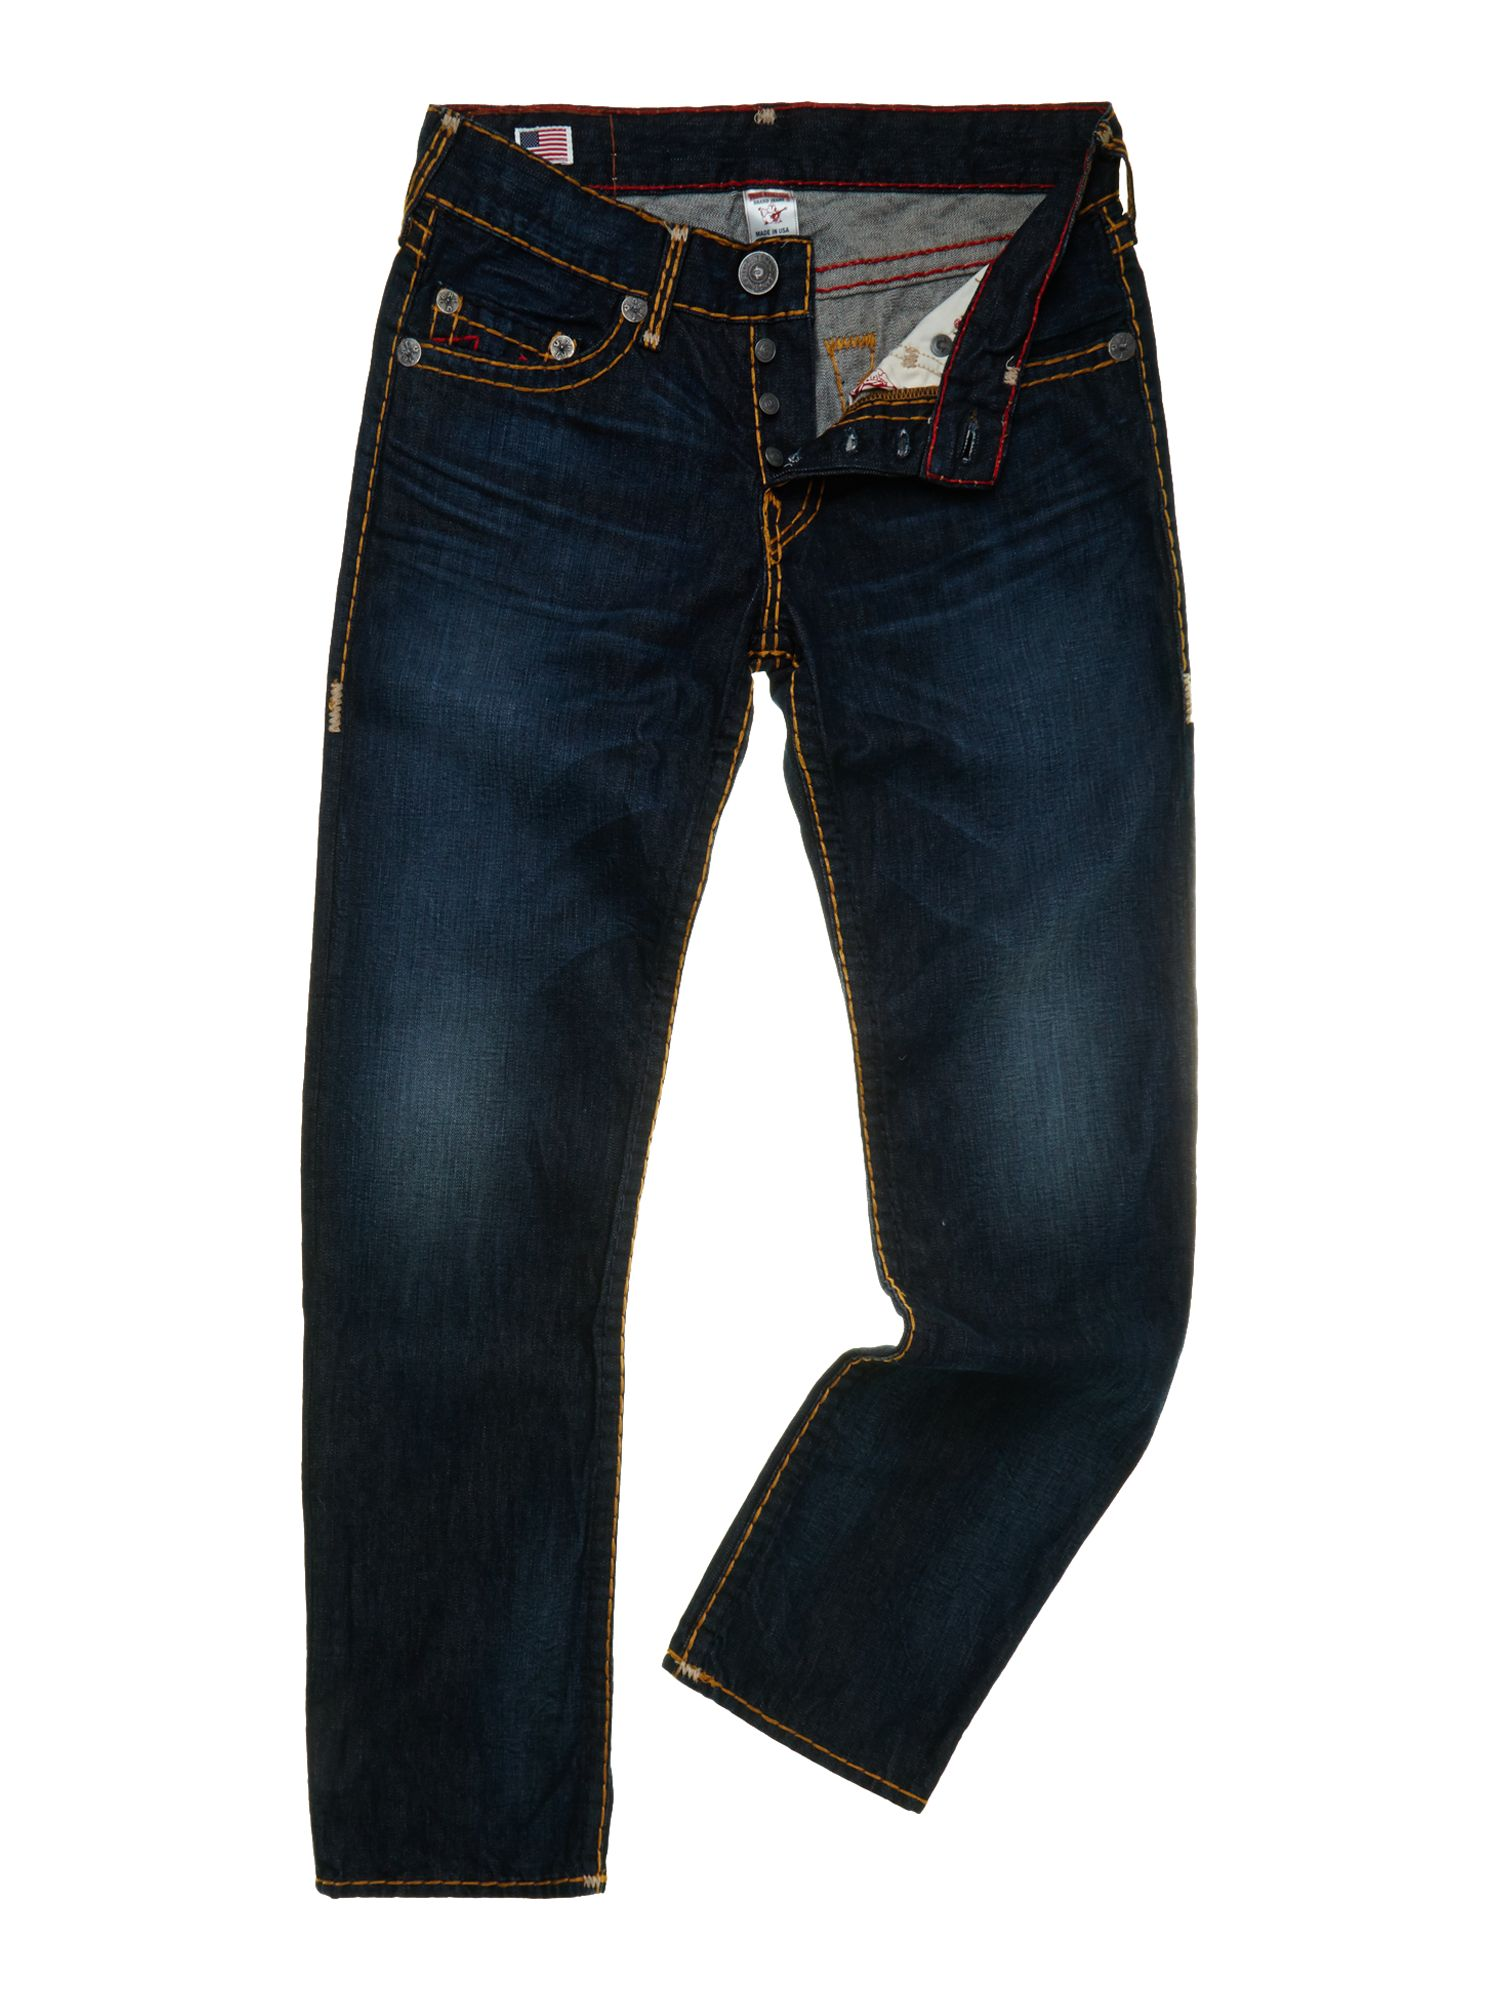 Geno super t slim fit jean